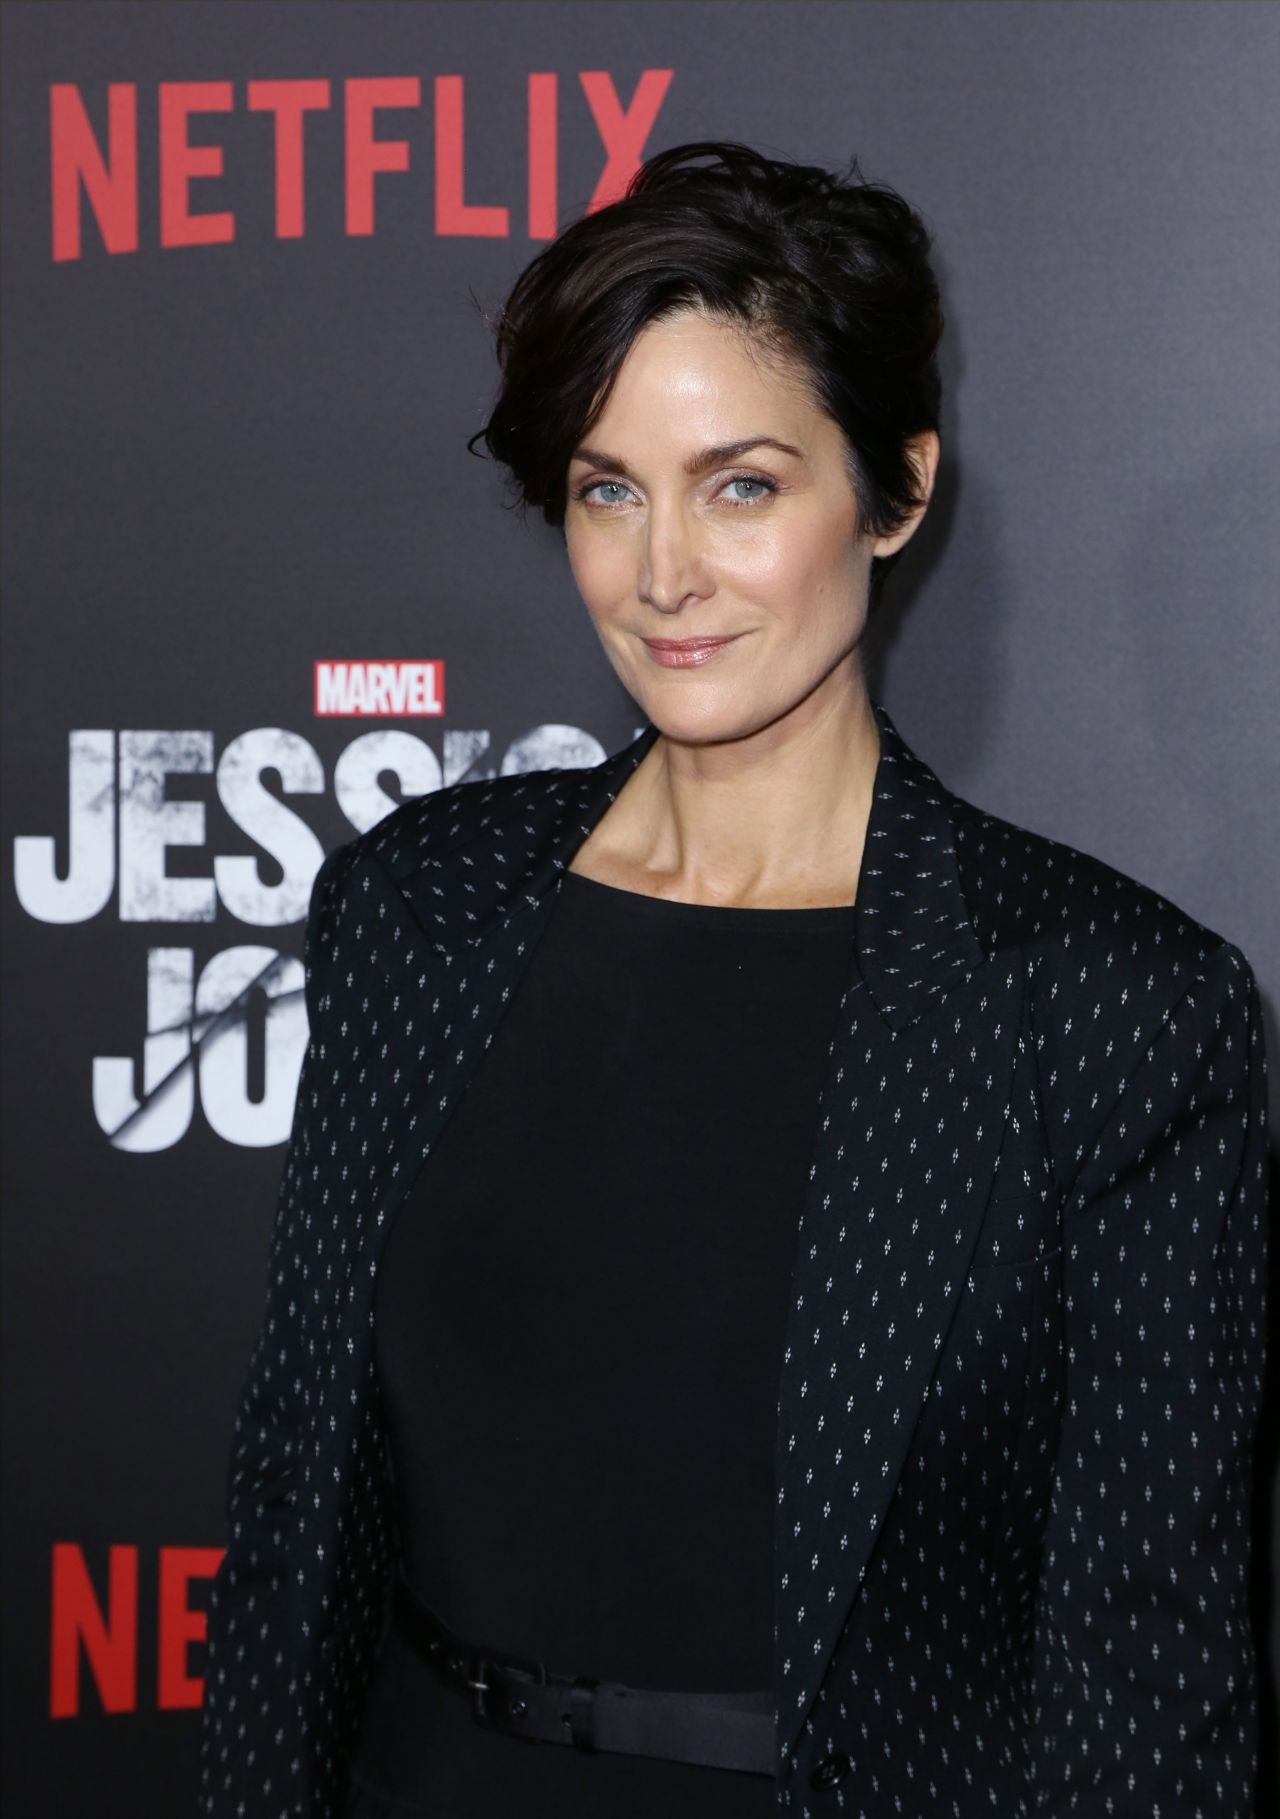 Carrie-Anne Moss - Jessica Jones Series Premiere at Regal ...